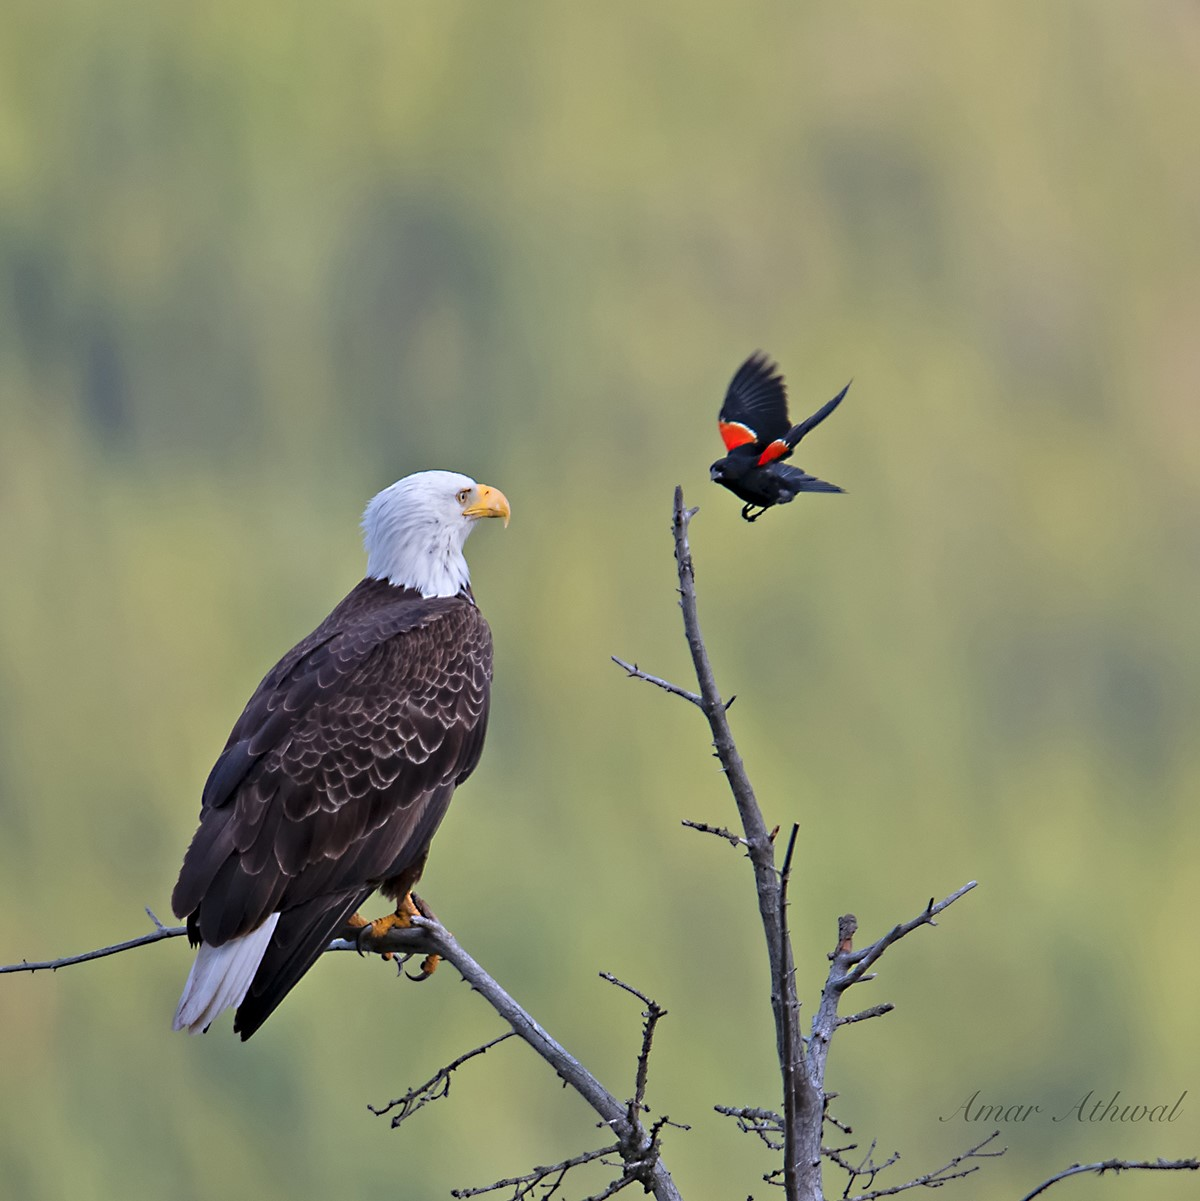 Bald Eagle and Red-winged Blackbird 190823 Amar Athwal.jpg